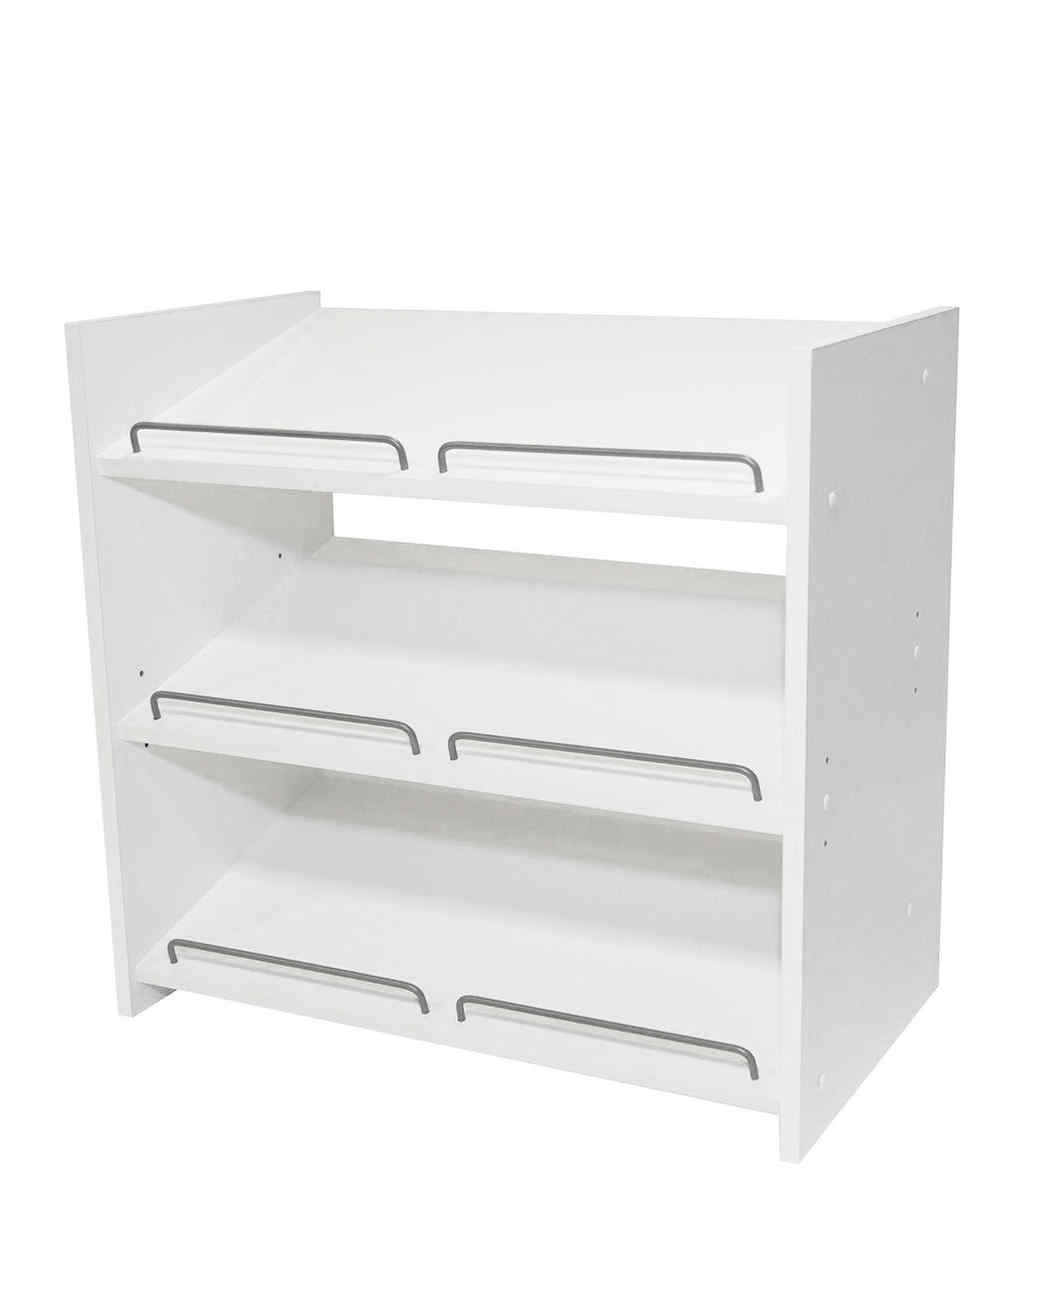 thd-storage-shoerack-mrkt-0814.jpg